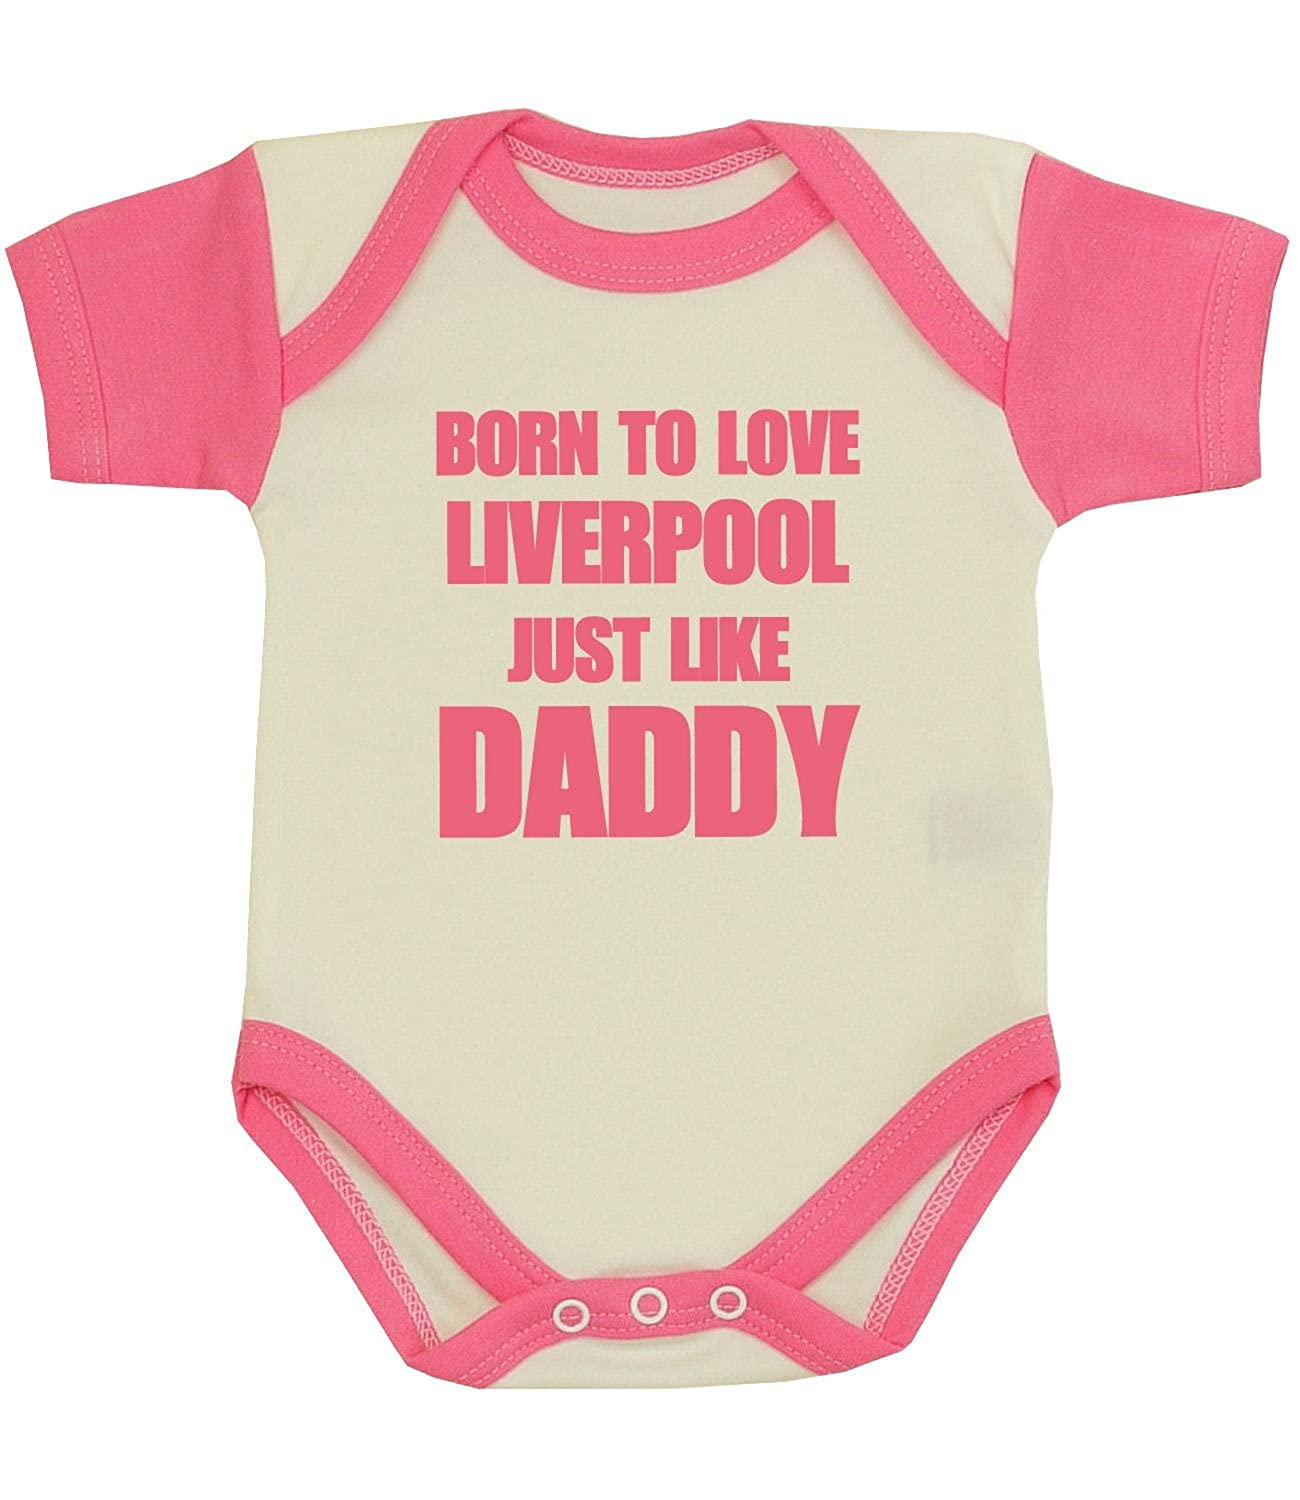 BabyPrem Baby Born to Love Liverpool Like Daddy Clothes Bodysuit NB-12mth